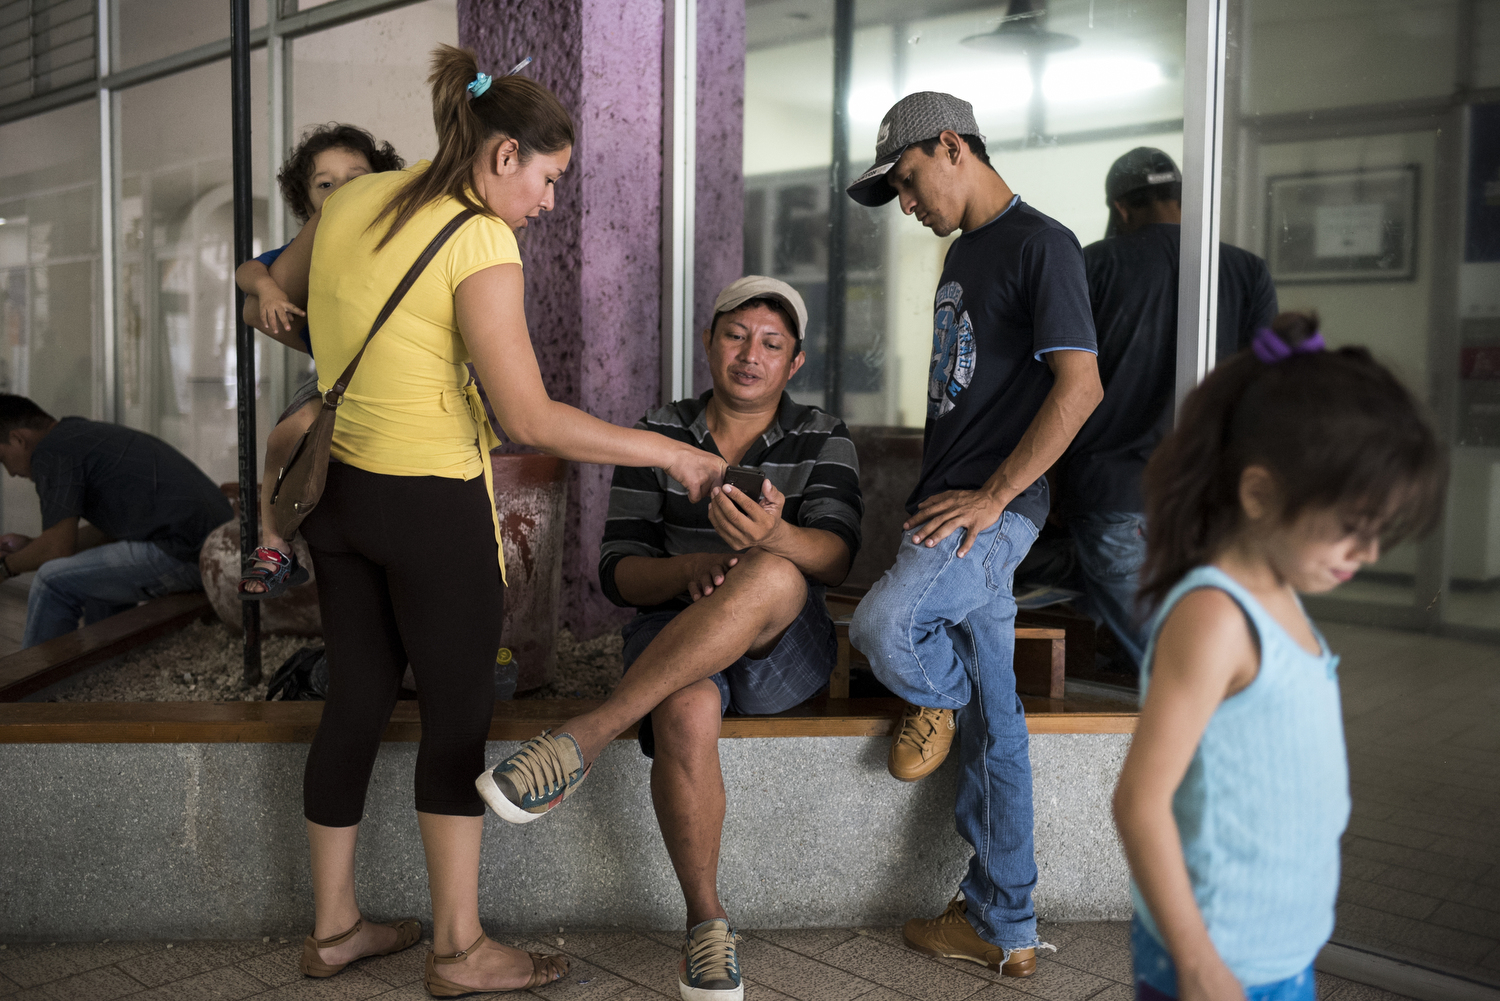 Danilo and two other asylum seekers sit and sit outside the offices where they are waiting to hear about the status of their applications.The woman on the left attended cosmetology school and is showing Danilo and his friend, Nildeson Ismael, photos from school. Danilo dreams of attending cosmetology school when he makes it to Tijuana.